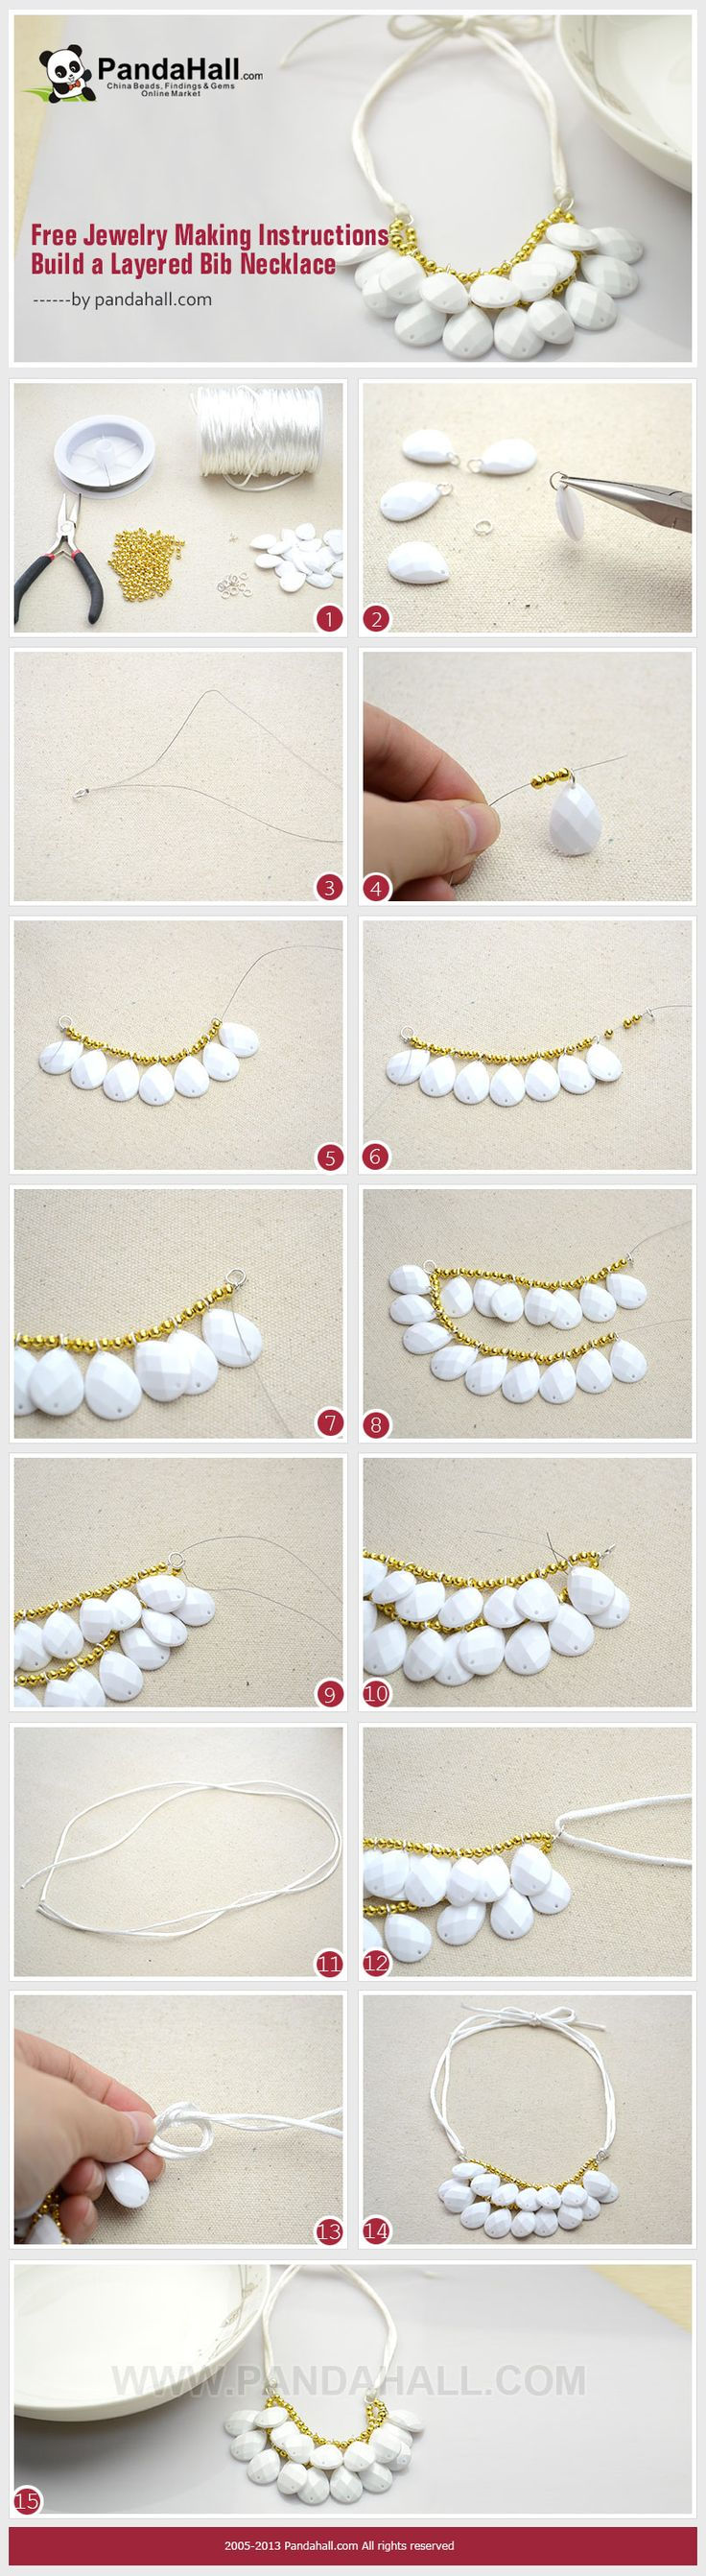 Free Jewelry Making Instructions – Build a Layered Bib Necklace from pandahall.com